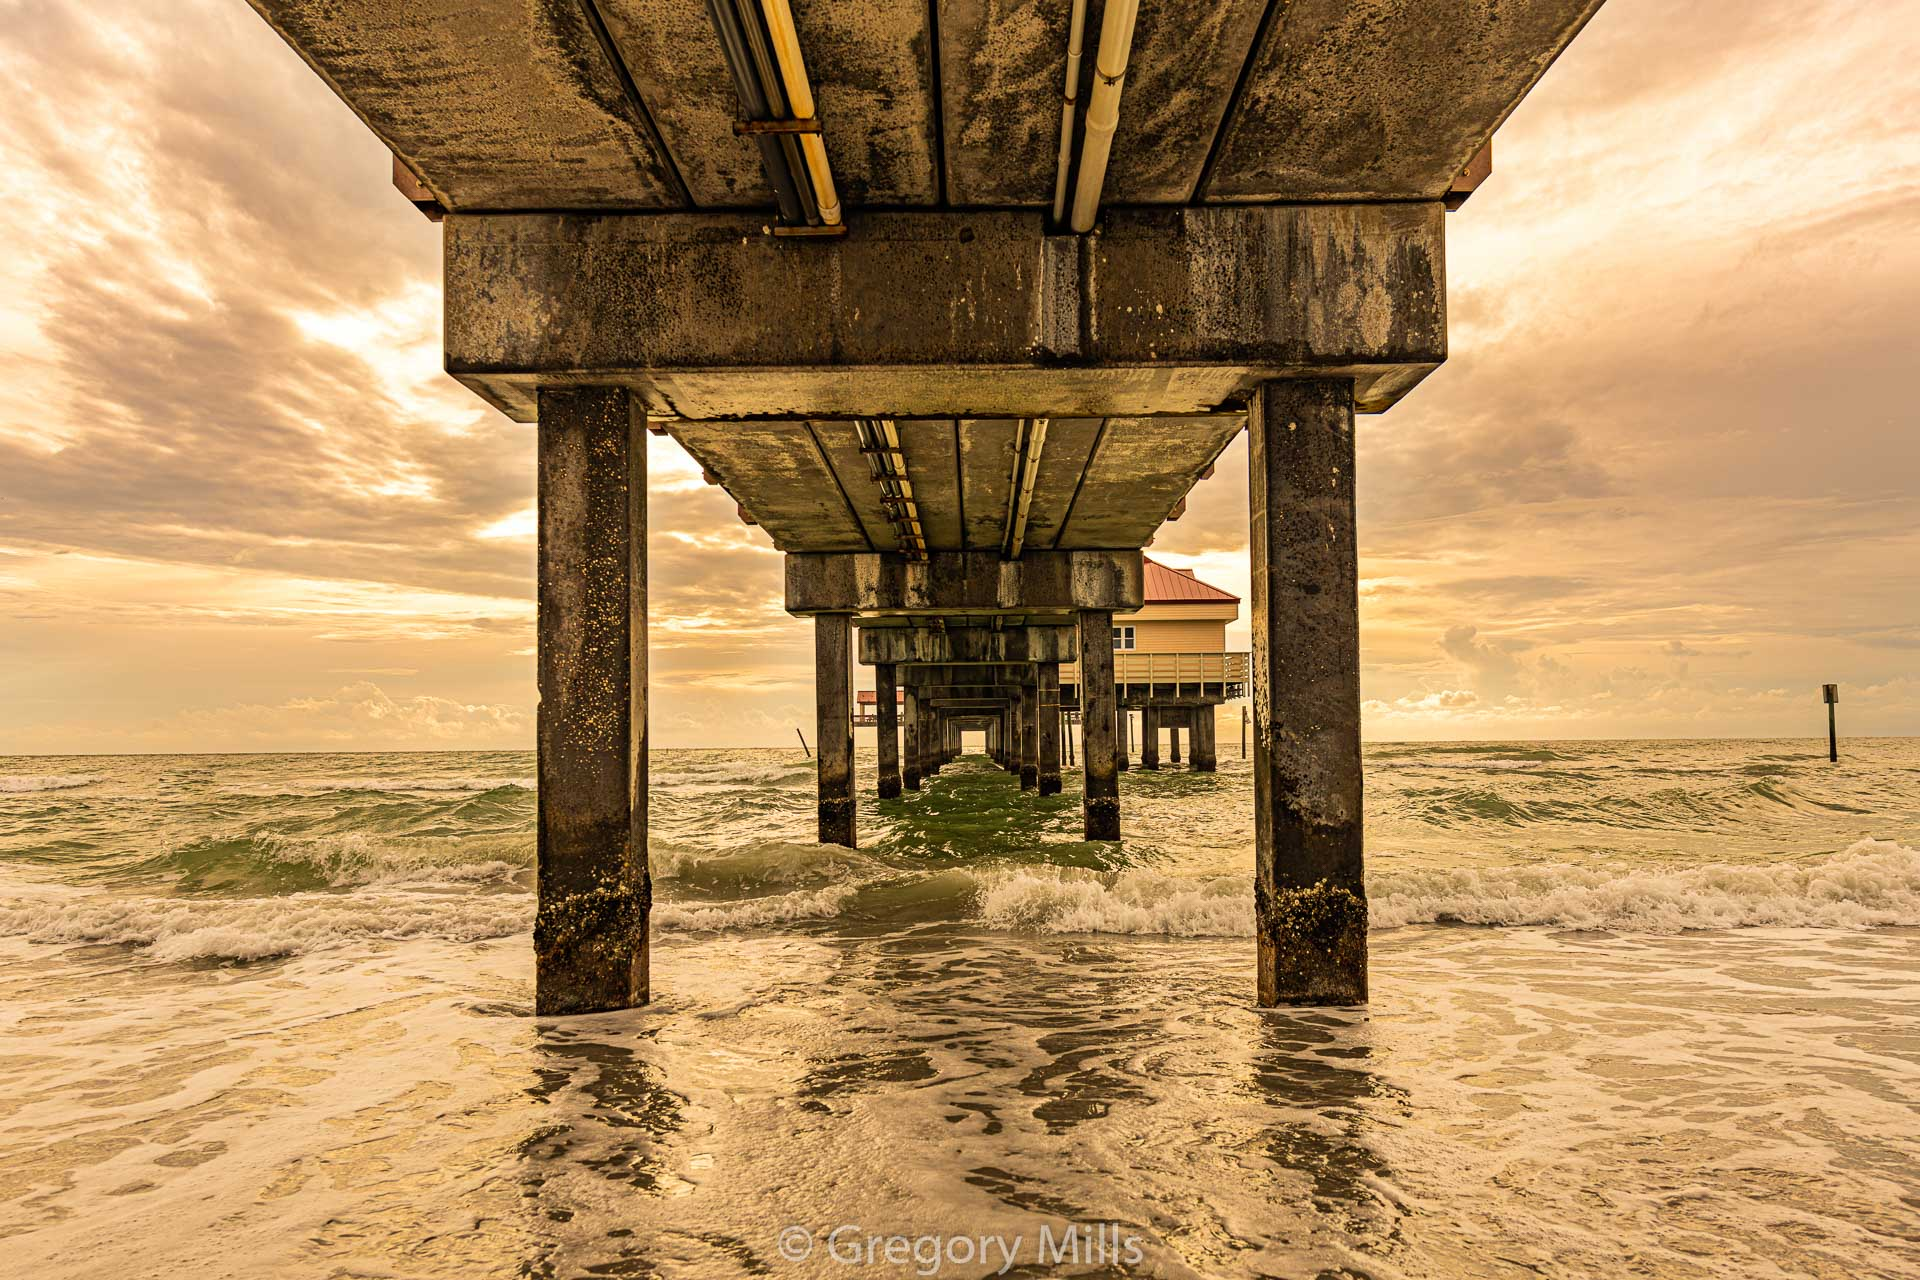 Under Pier 60 at Clearwater Beach. Yes I am in the water with my camera on a tripod!